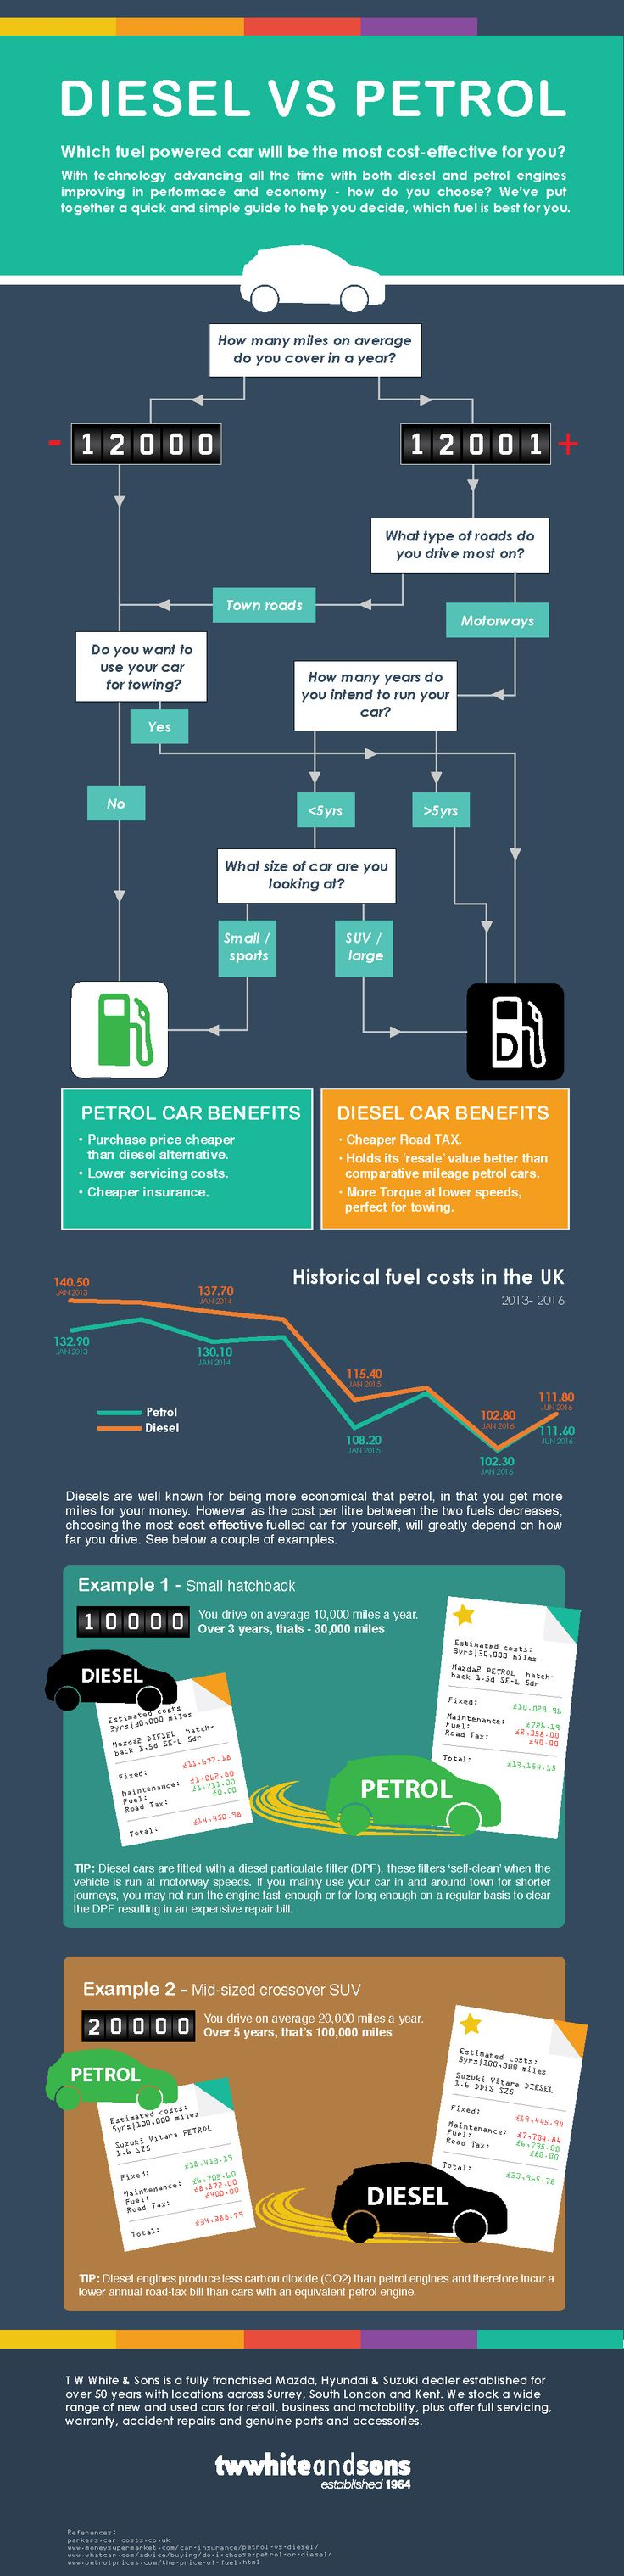 Diesel vs Petrol infographic - which car do I buy? Automotive technology is…